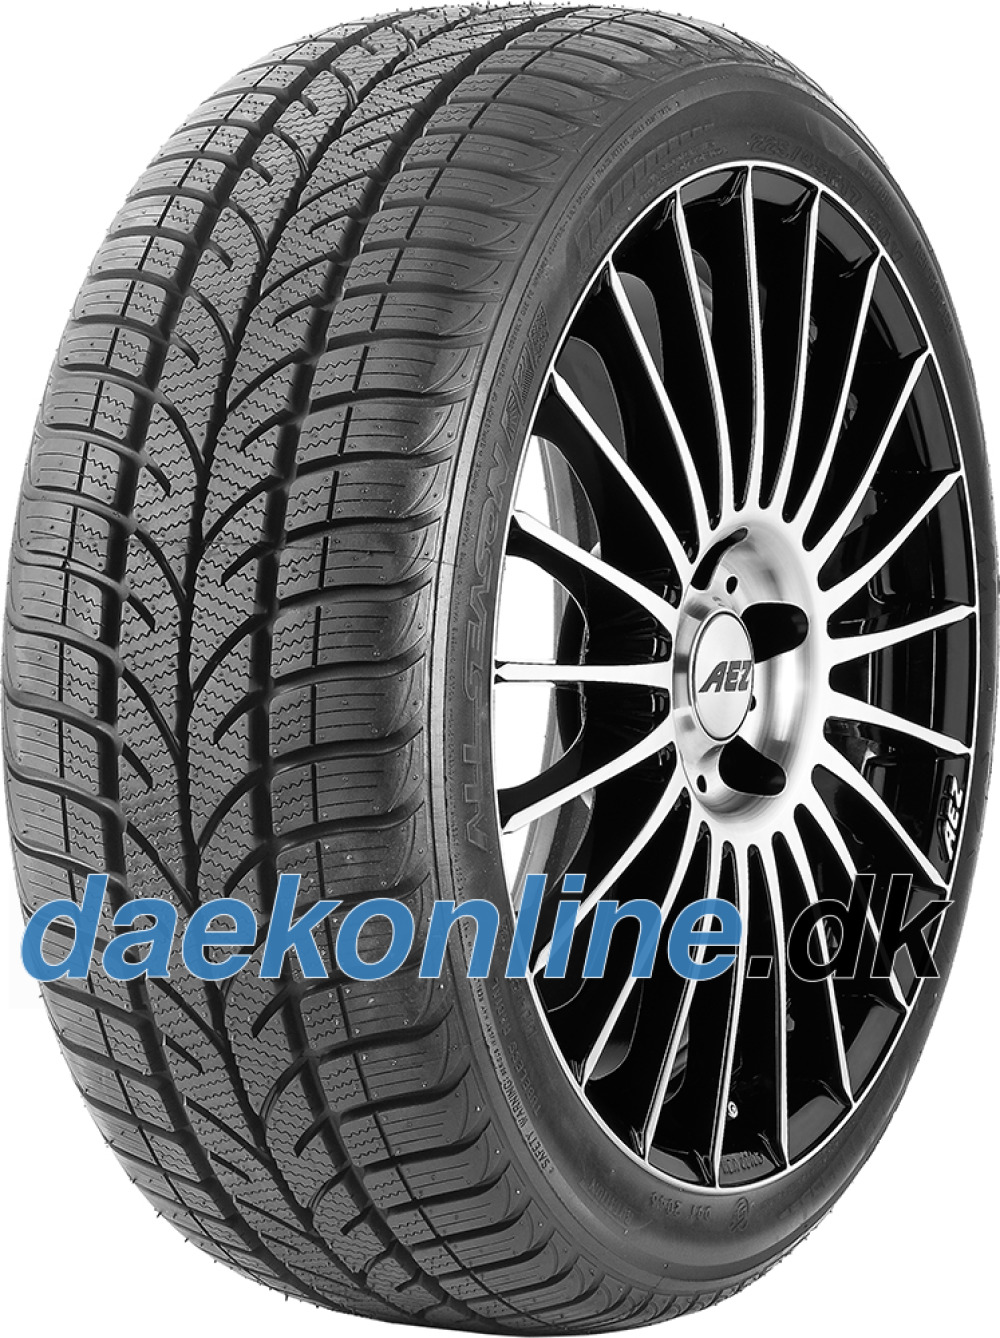 maxxis-ma-as-15560-r15-74t